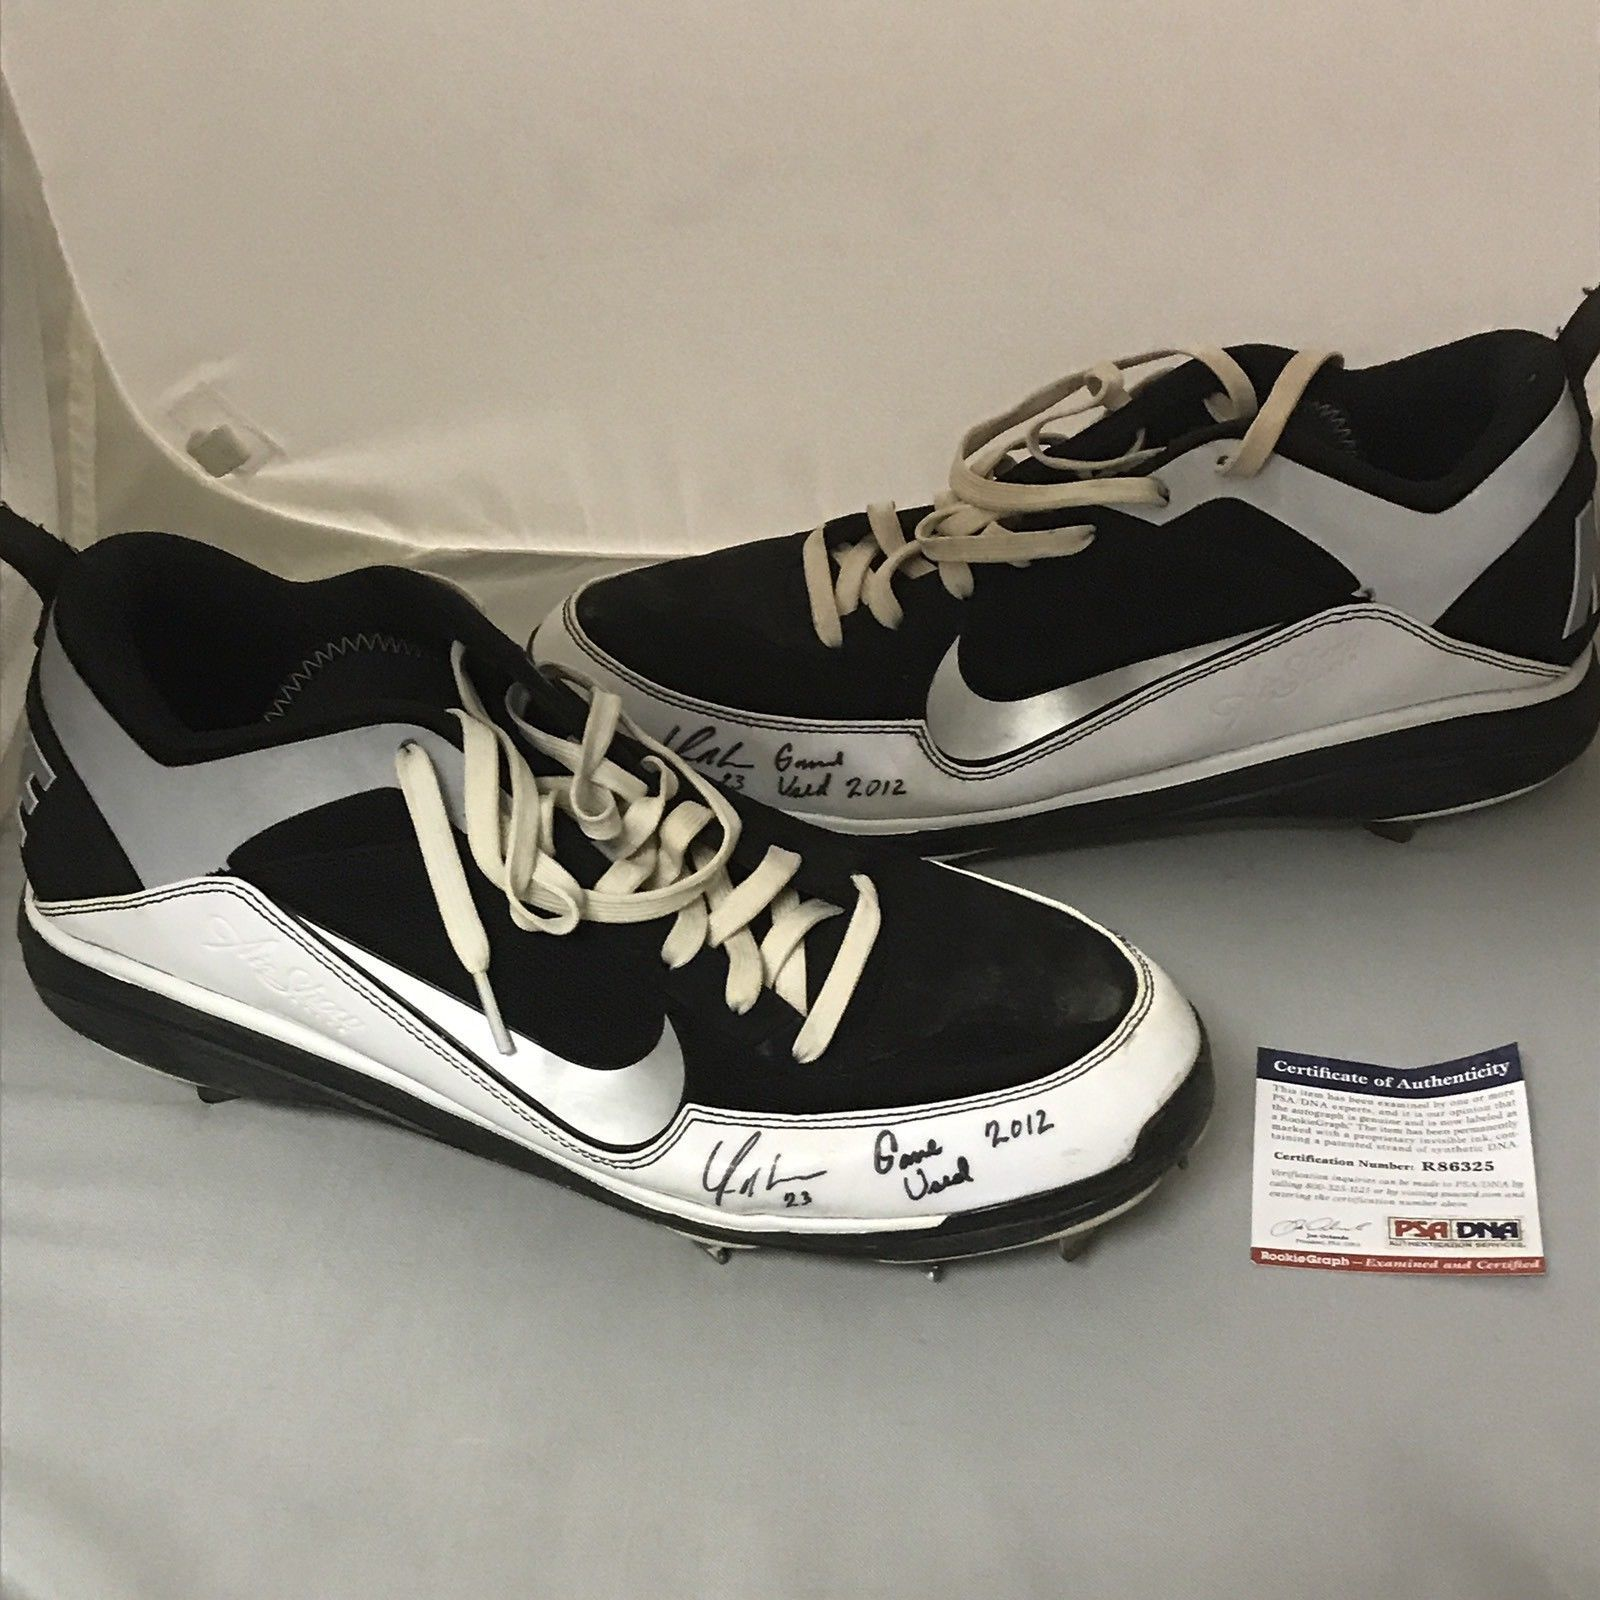 Autographed/Signed YONDER ALONSO 2012 Game Used Pair Cleats Shoes PSA/DNA COA